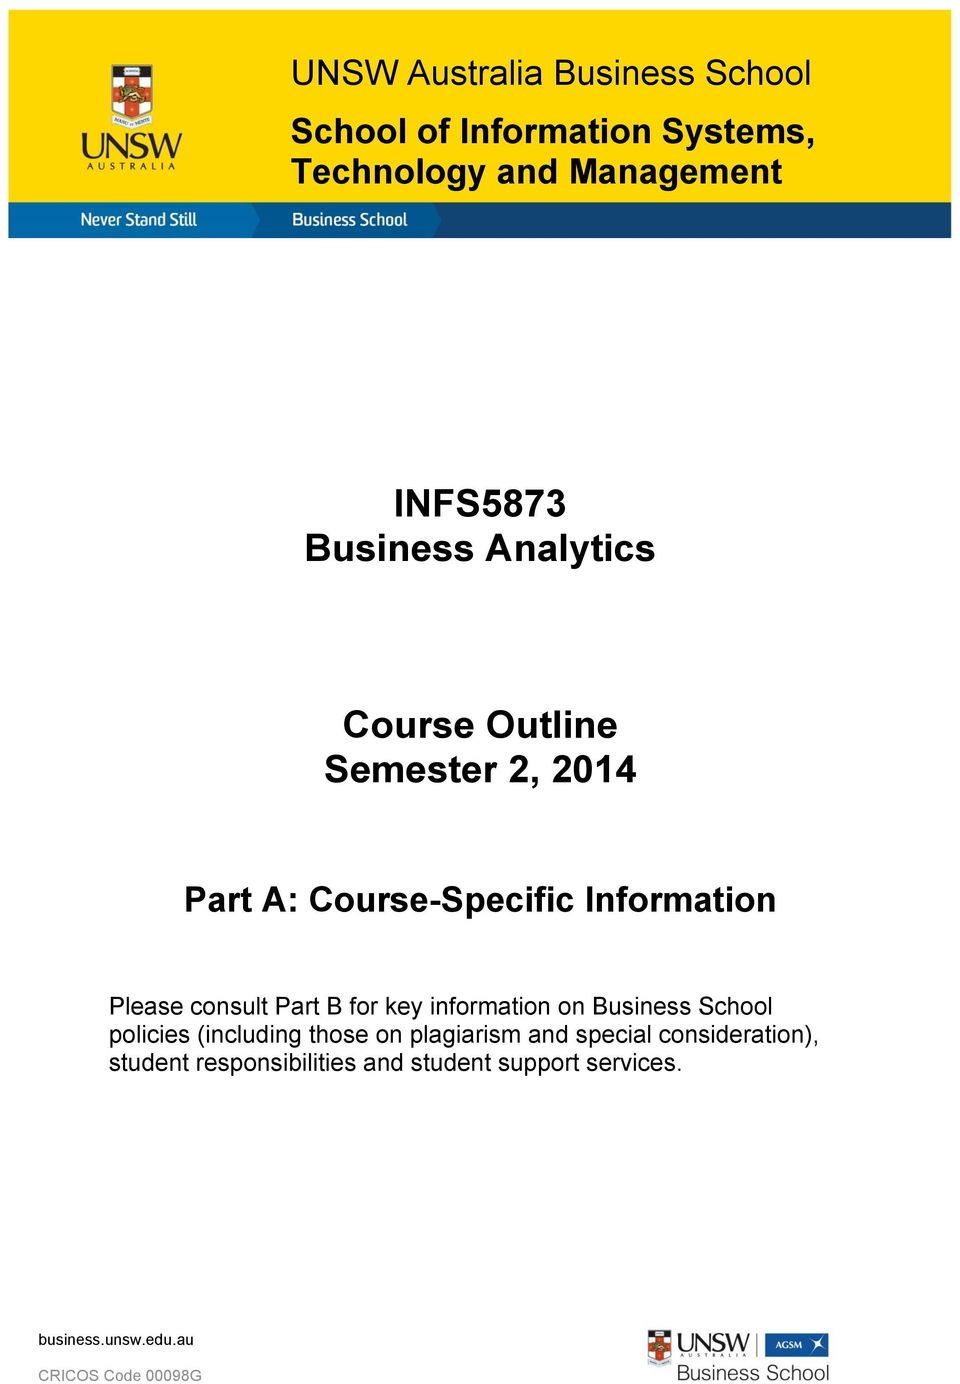 Information Please consult Part B for key information on Business School policies